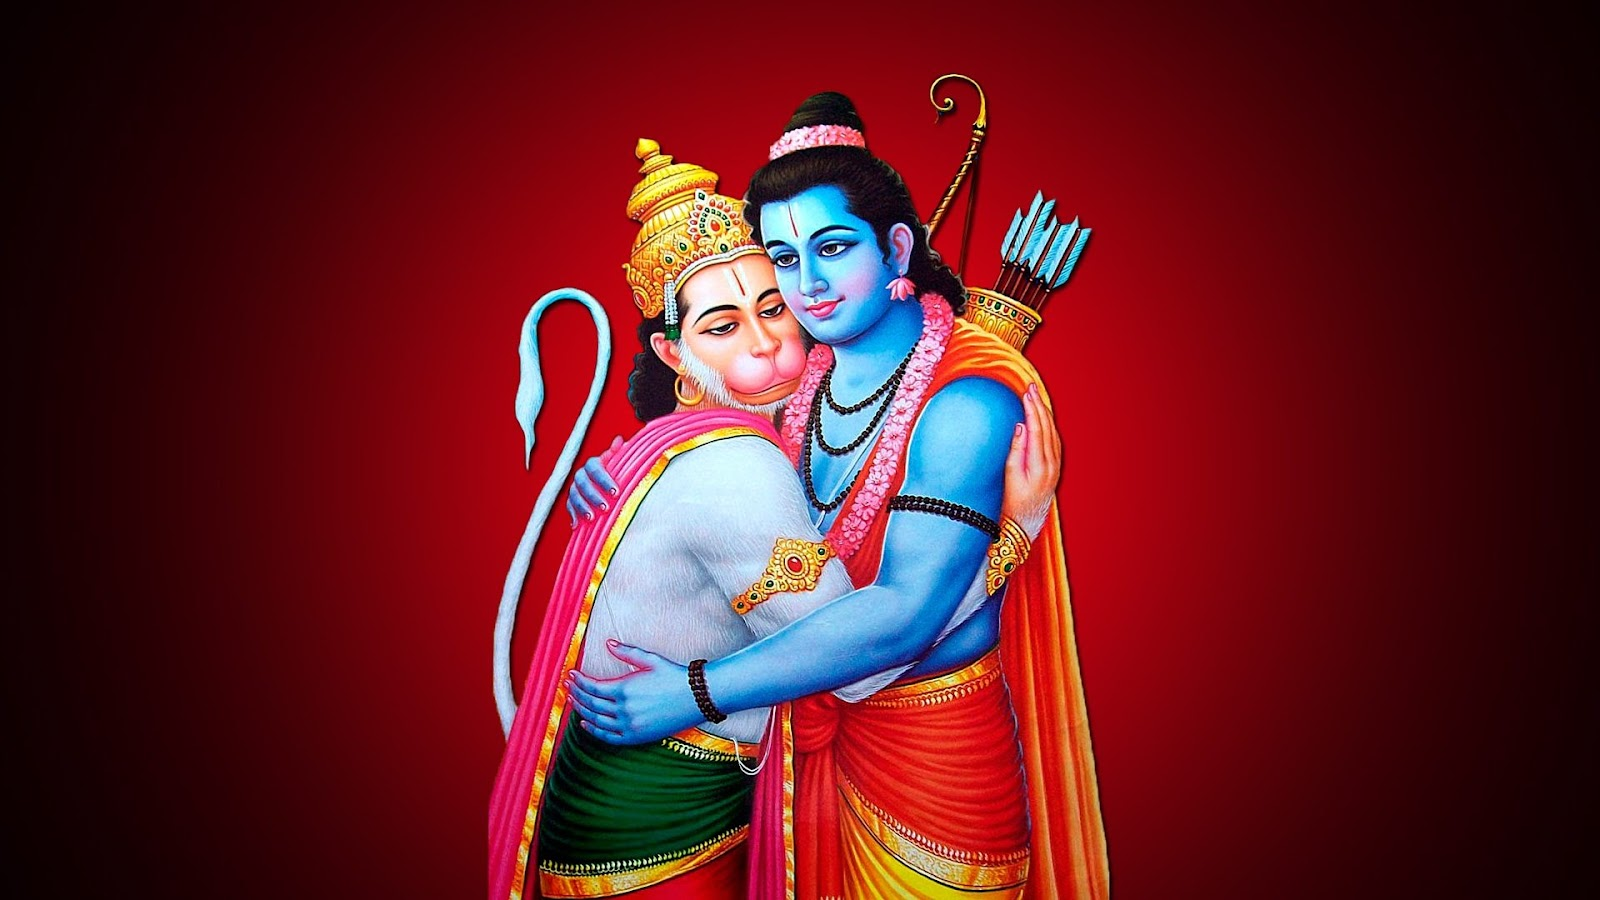 Lord Hanuman Hd Wallpaper Latestwallpaper99